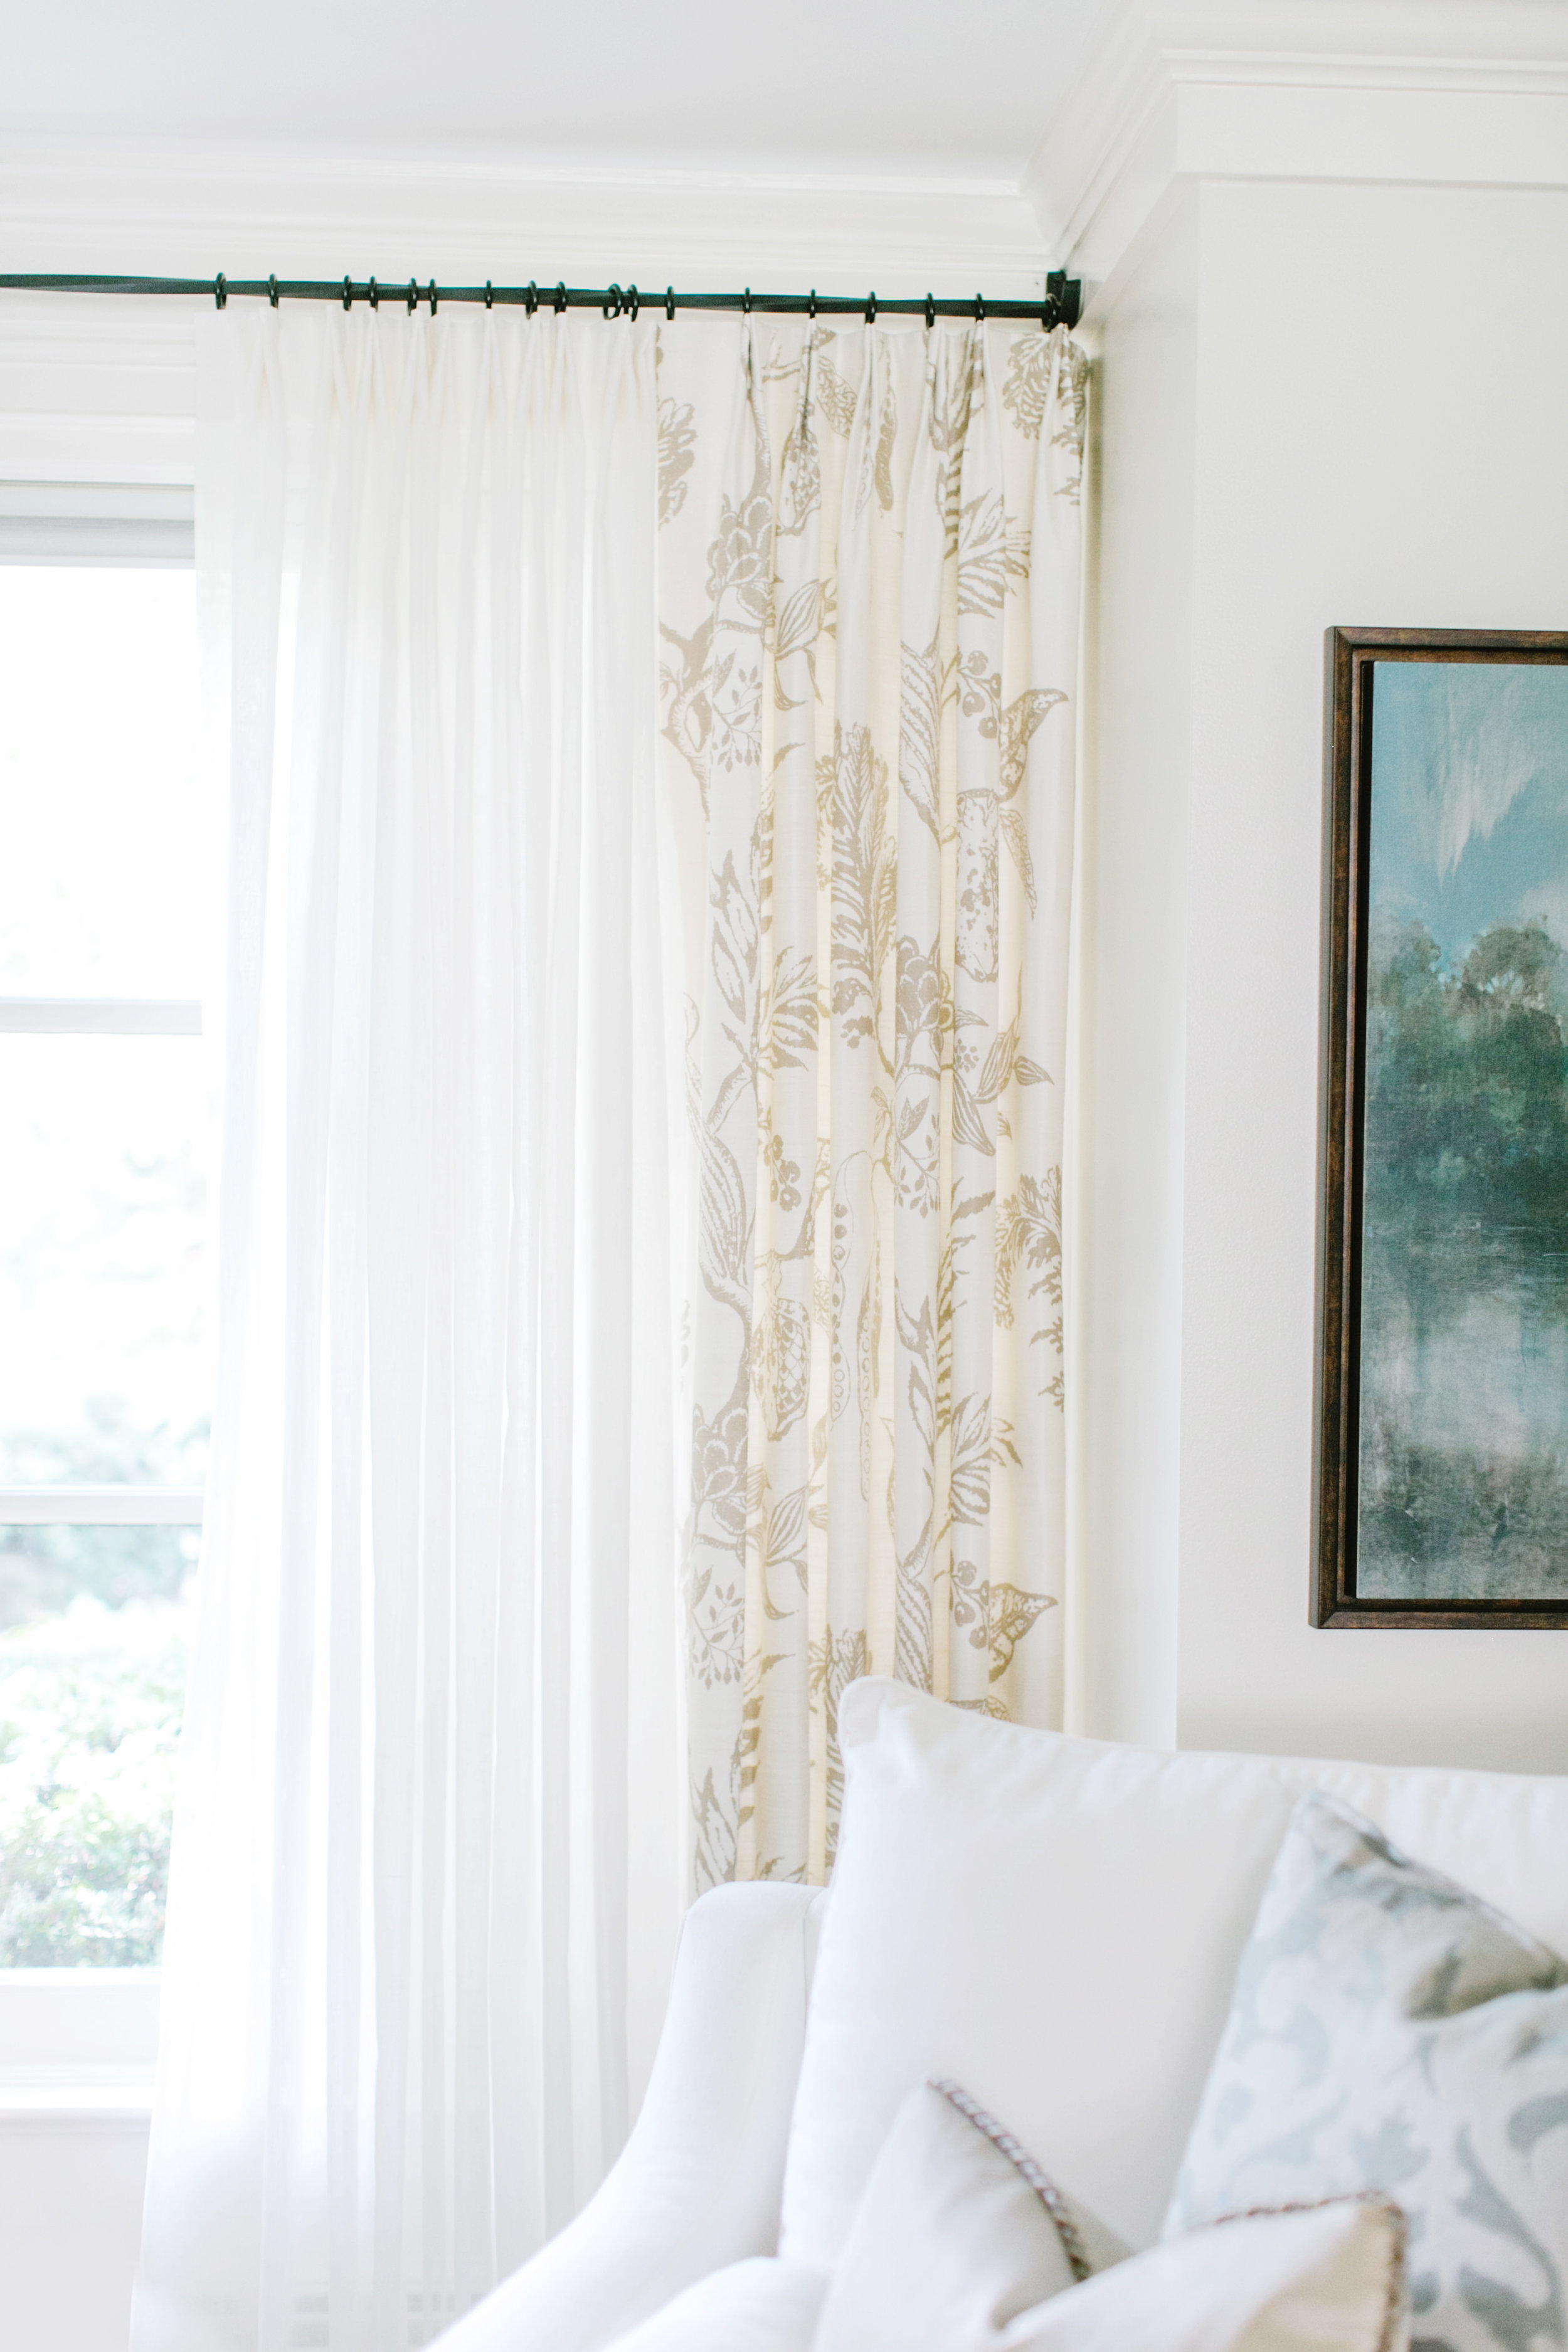 Custom curtains in a client's home